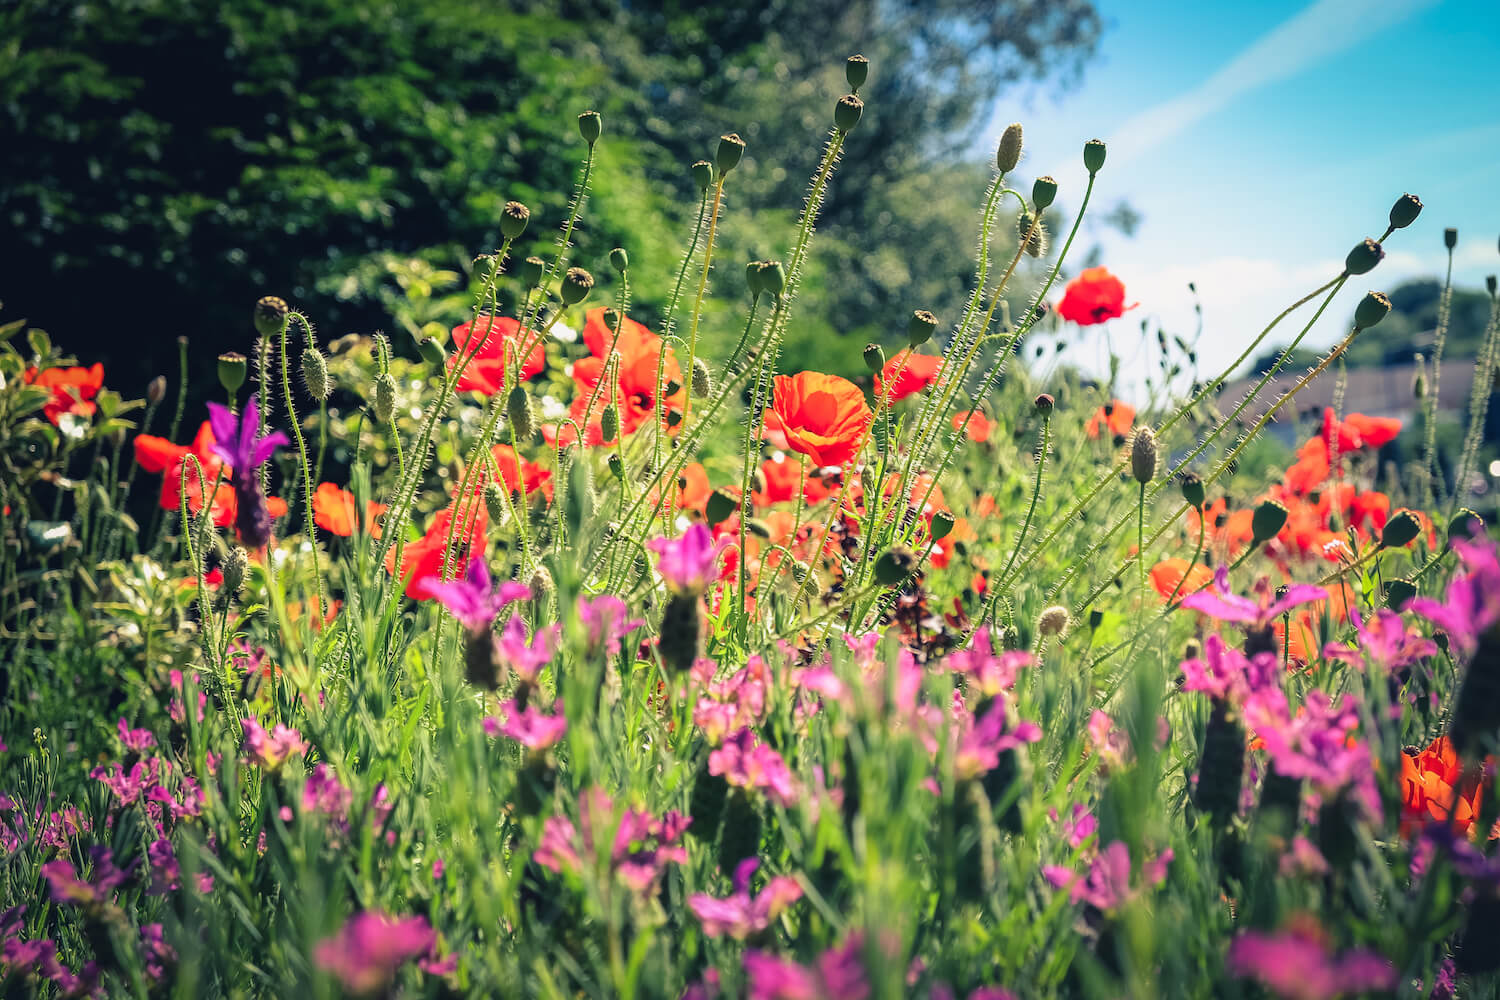 The Friends of Hednesford Park - Poppies